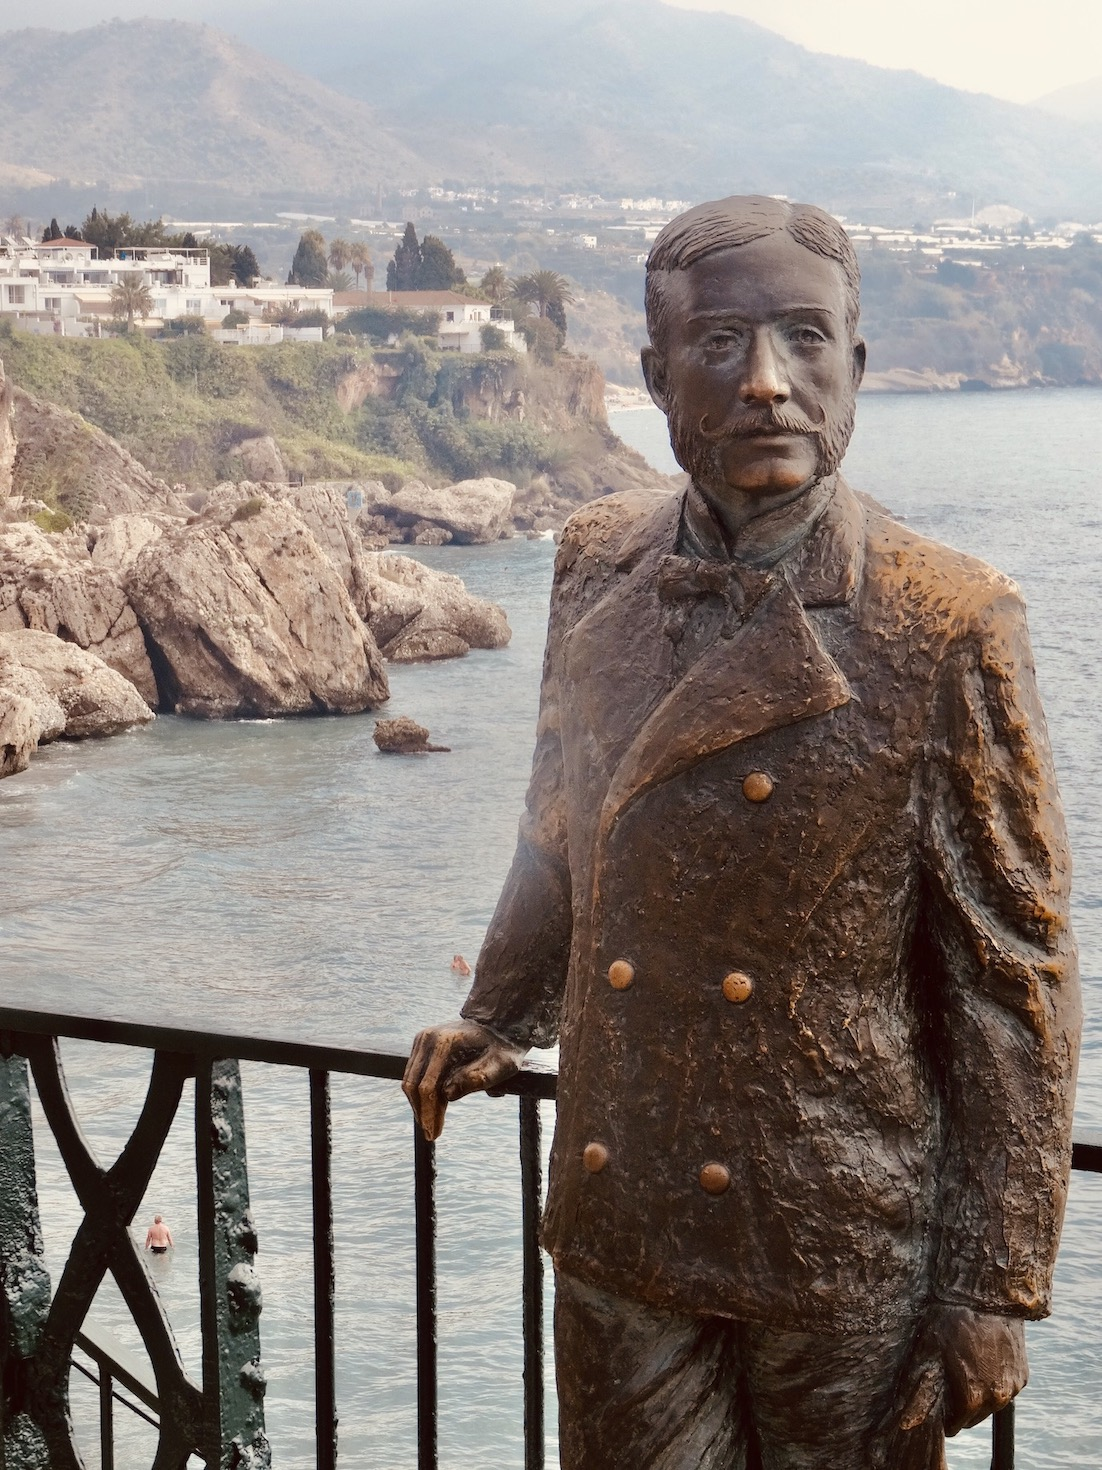 King Alfonso XII Statue Nerja Spain.